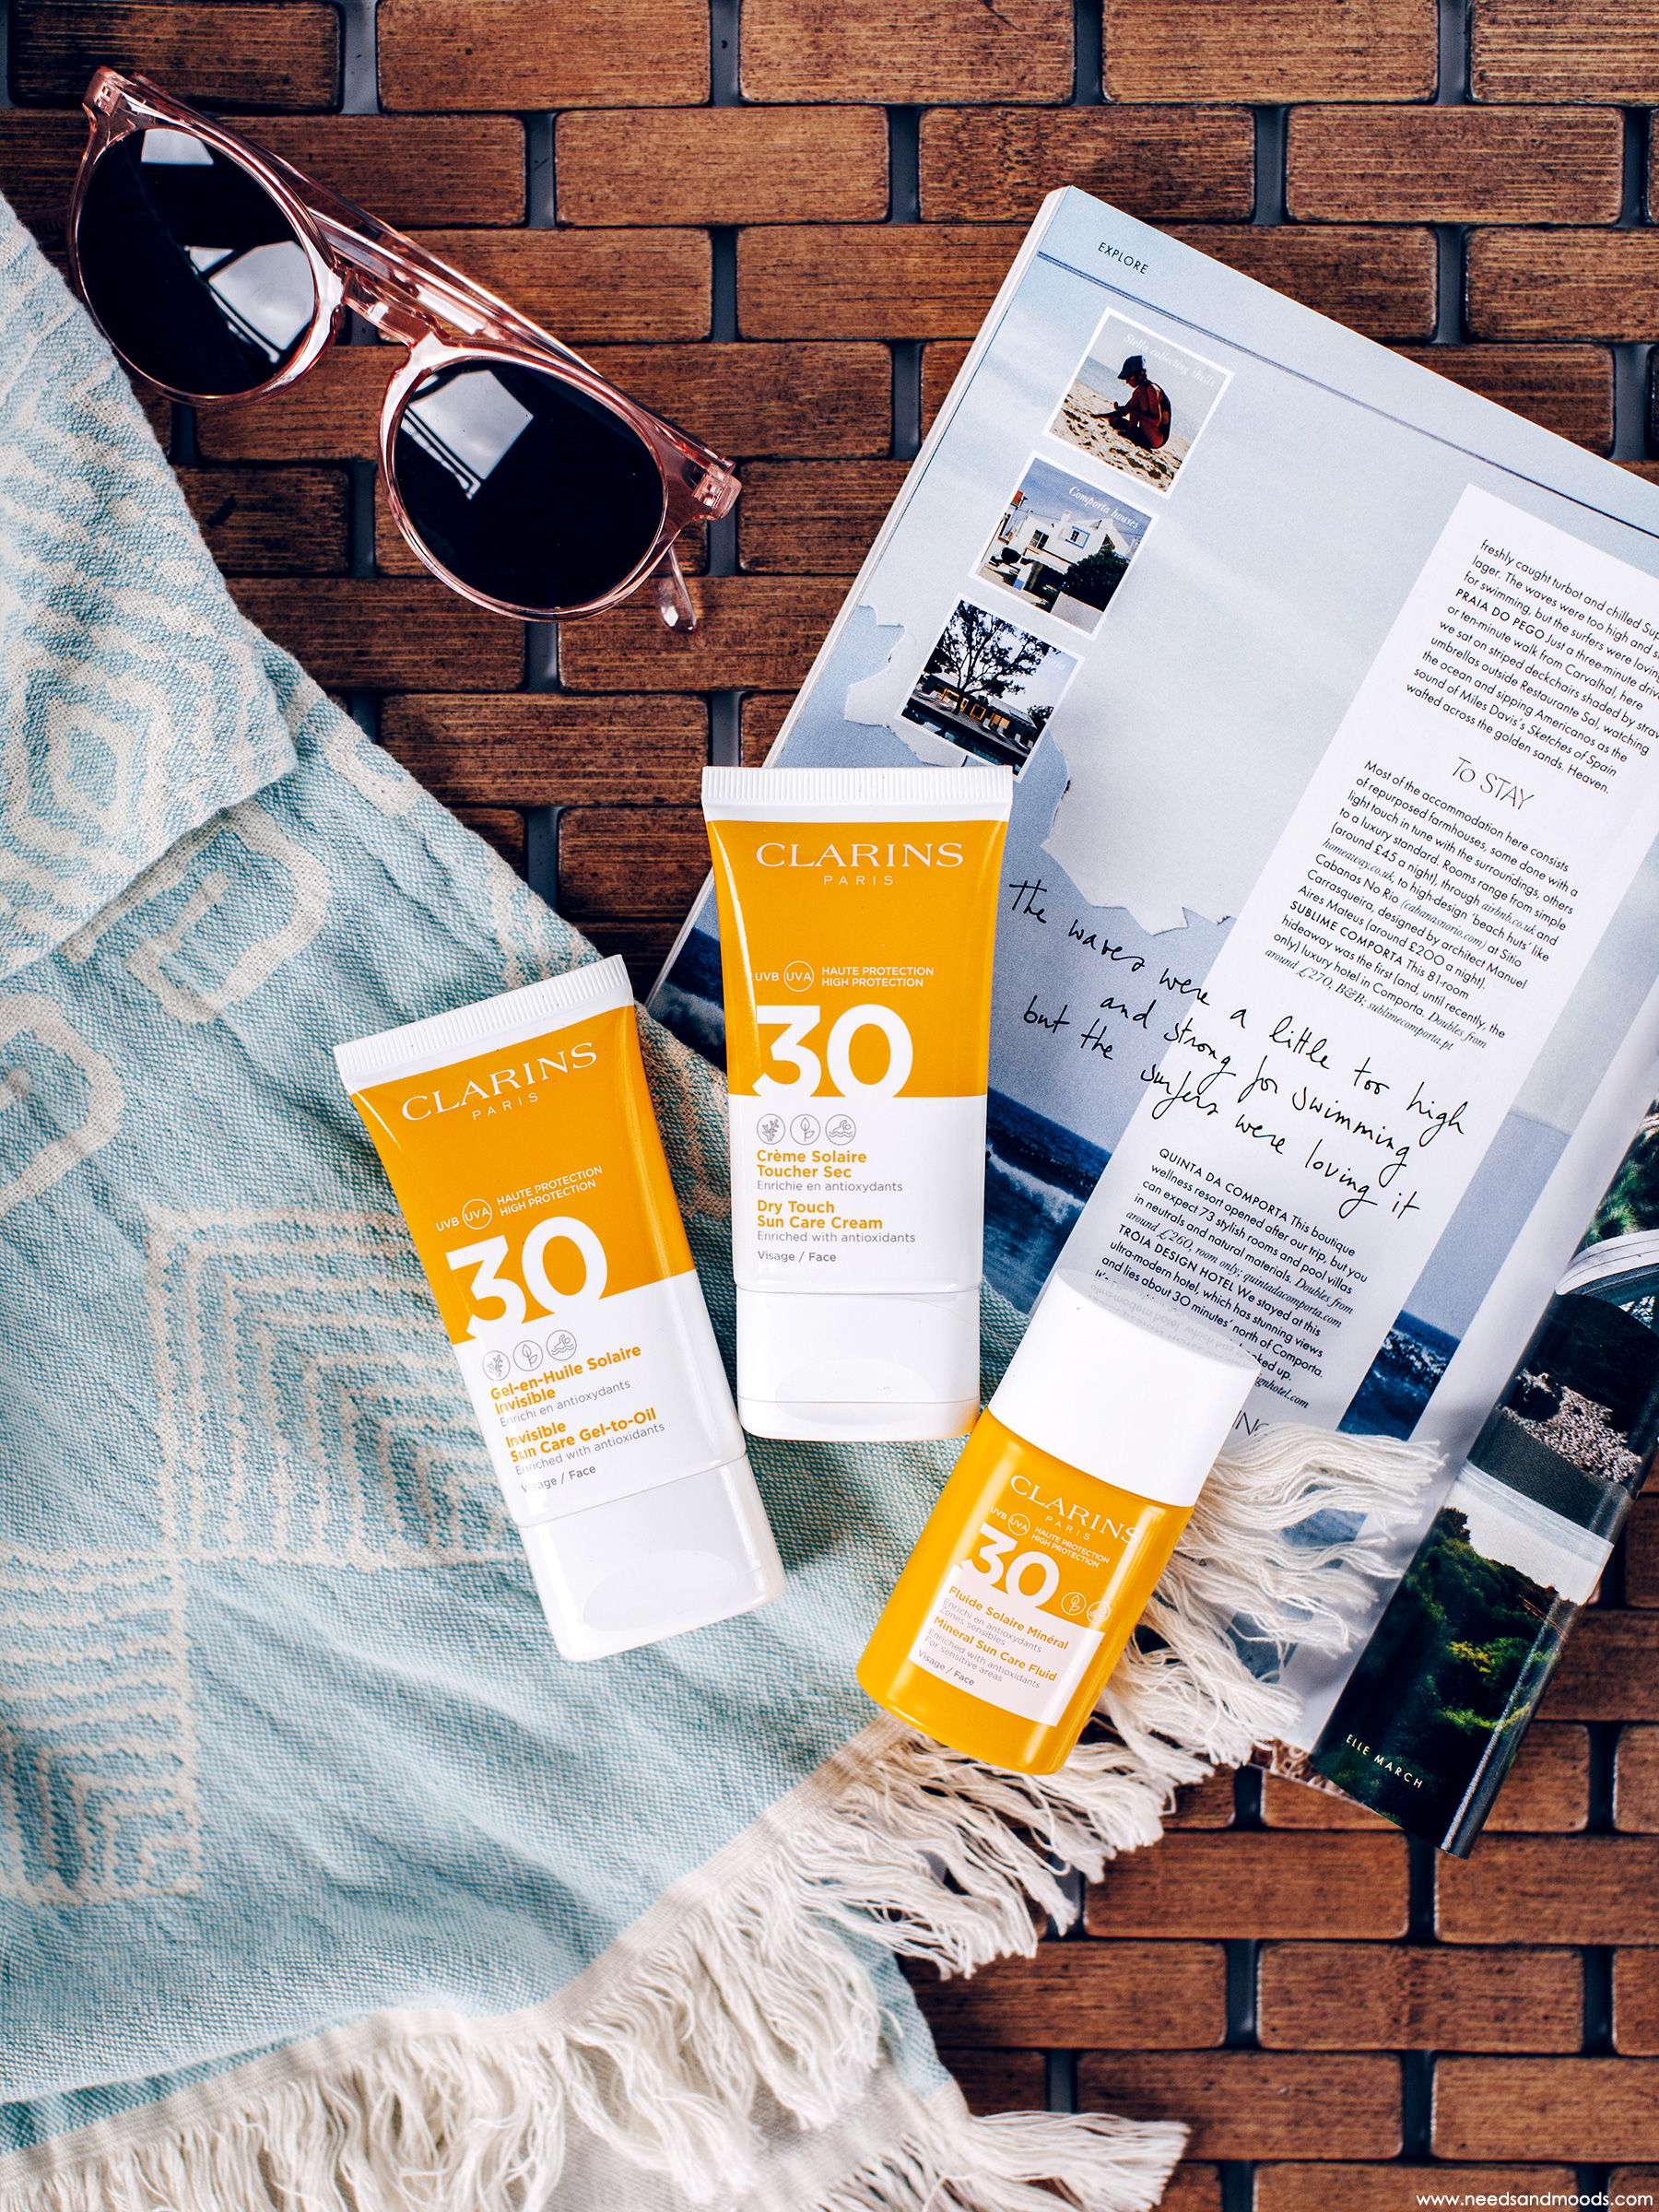 clarins protections solaires visage avis